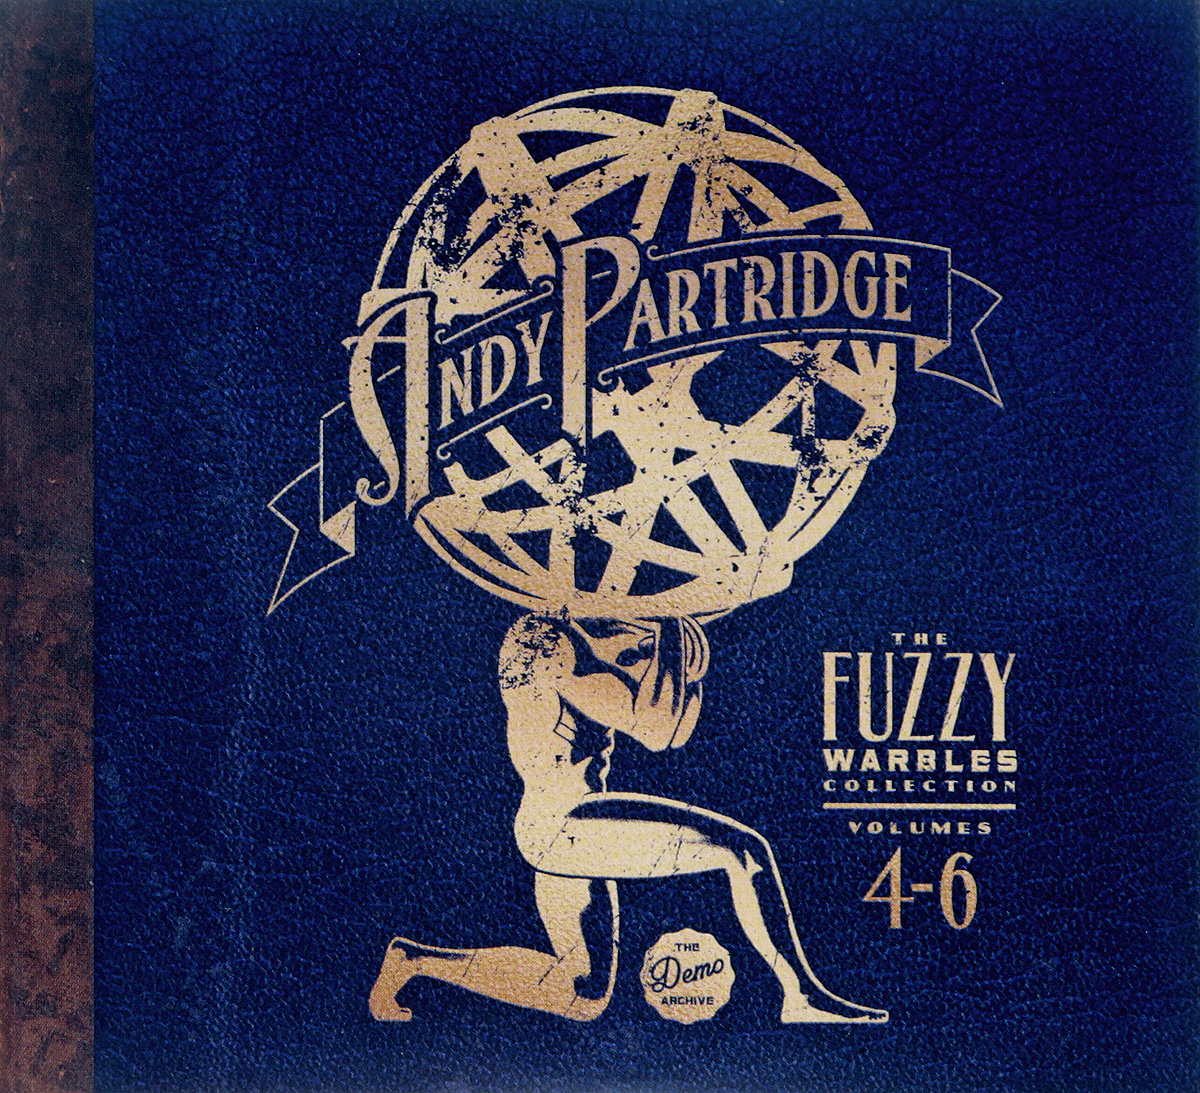 Andrew John Andy Partridge Andy Partridge. Fuzzy Warbles Volume 4-6 (3 CD) кеды andy z andy z an048awisq69